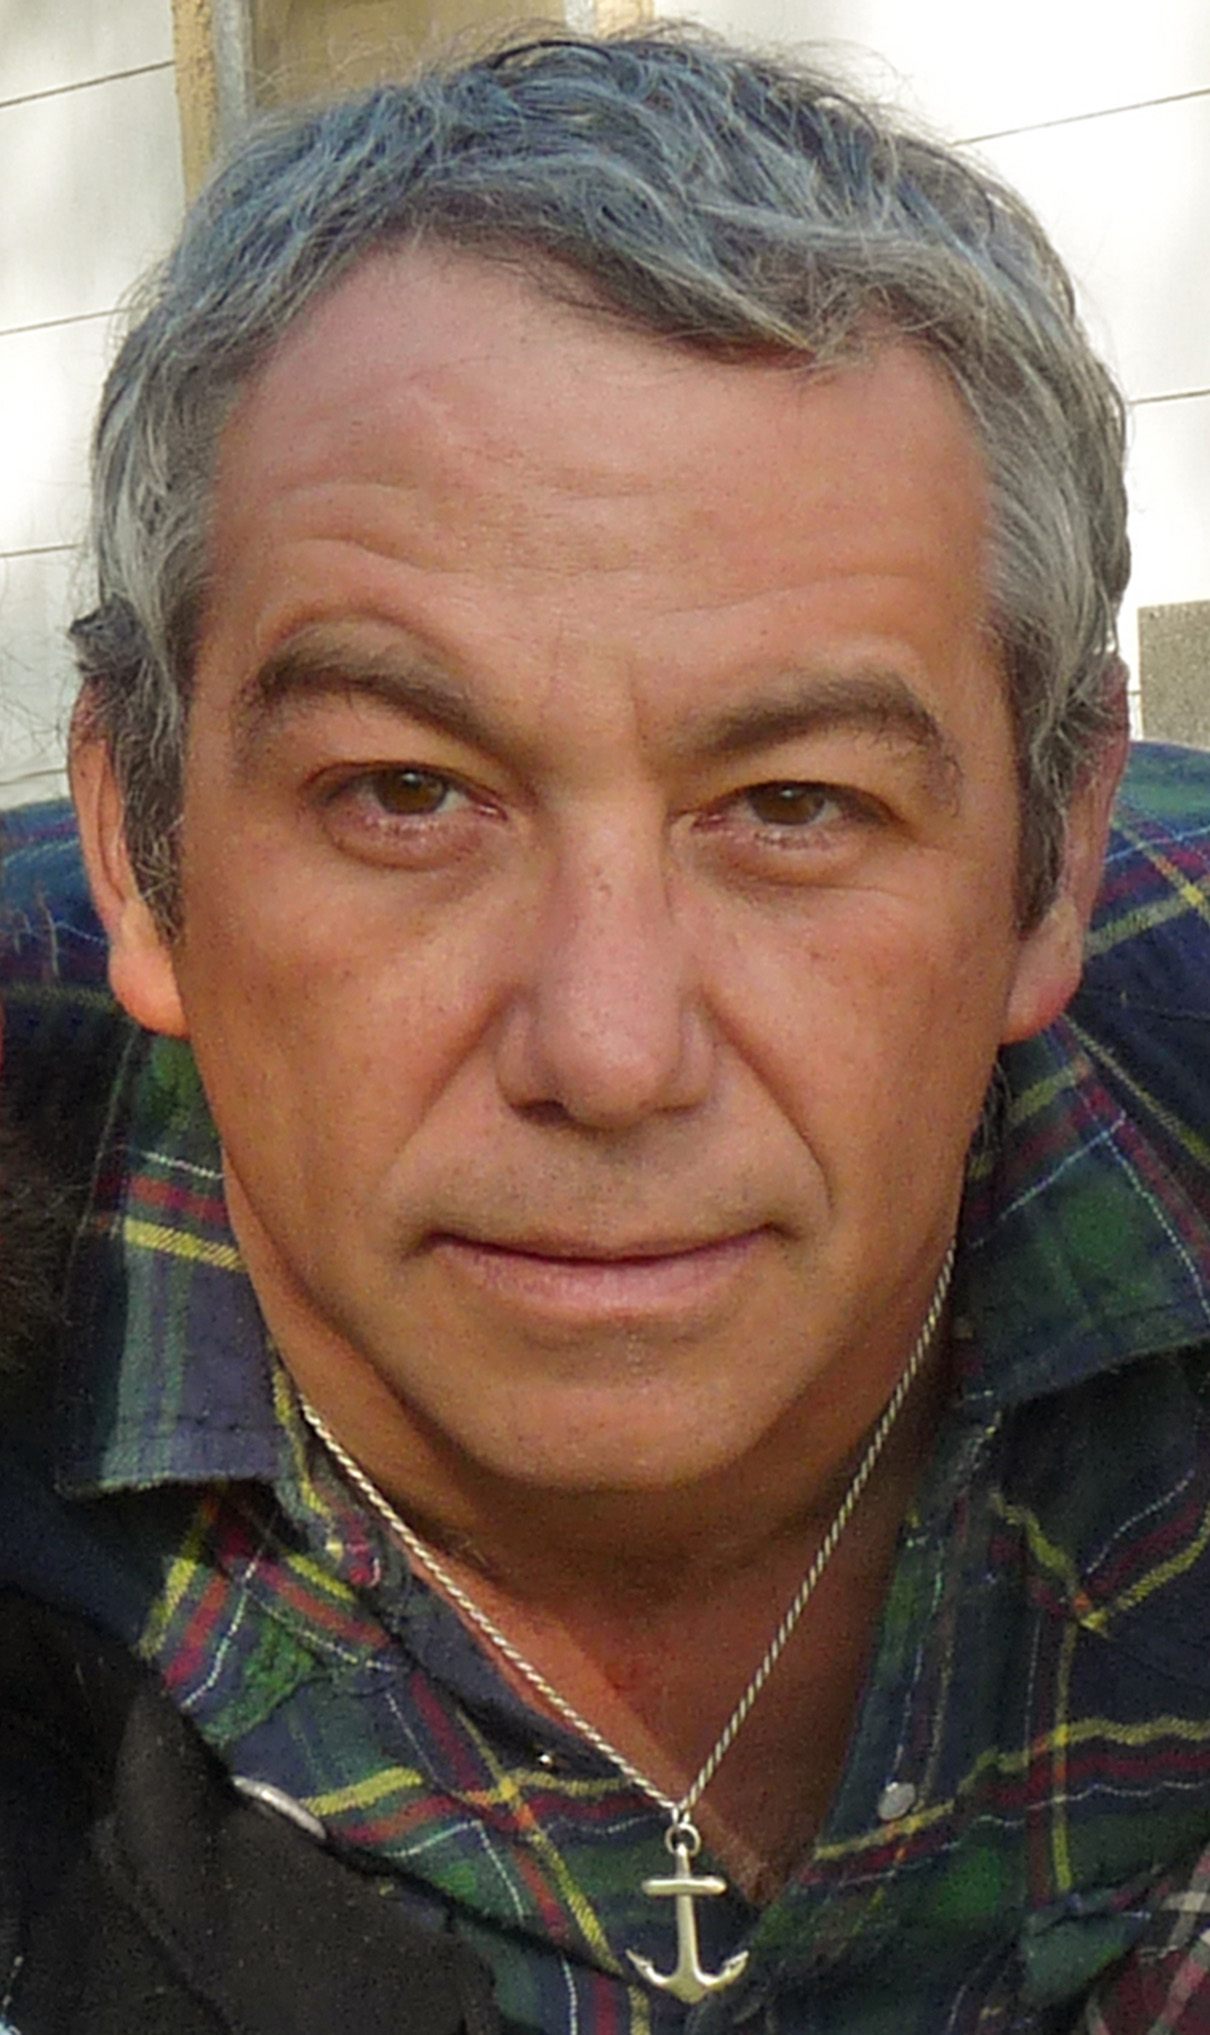 Rare Mike Watt Live Album Featuring Backing Band with Pat Smear, Dave Grohl and Eddie Vedder to Be Released